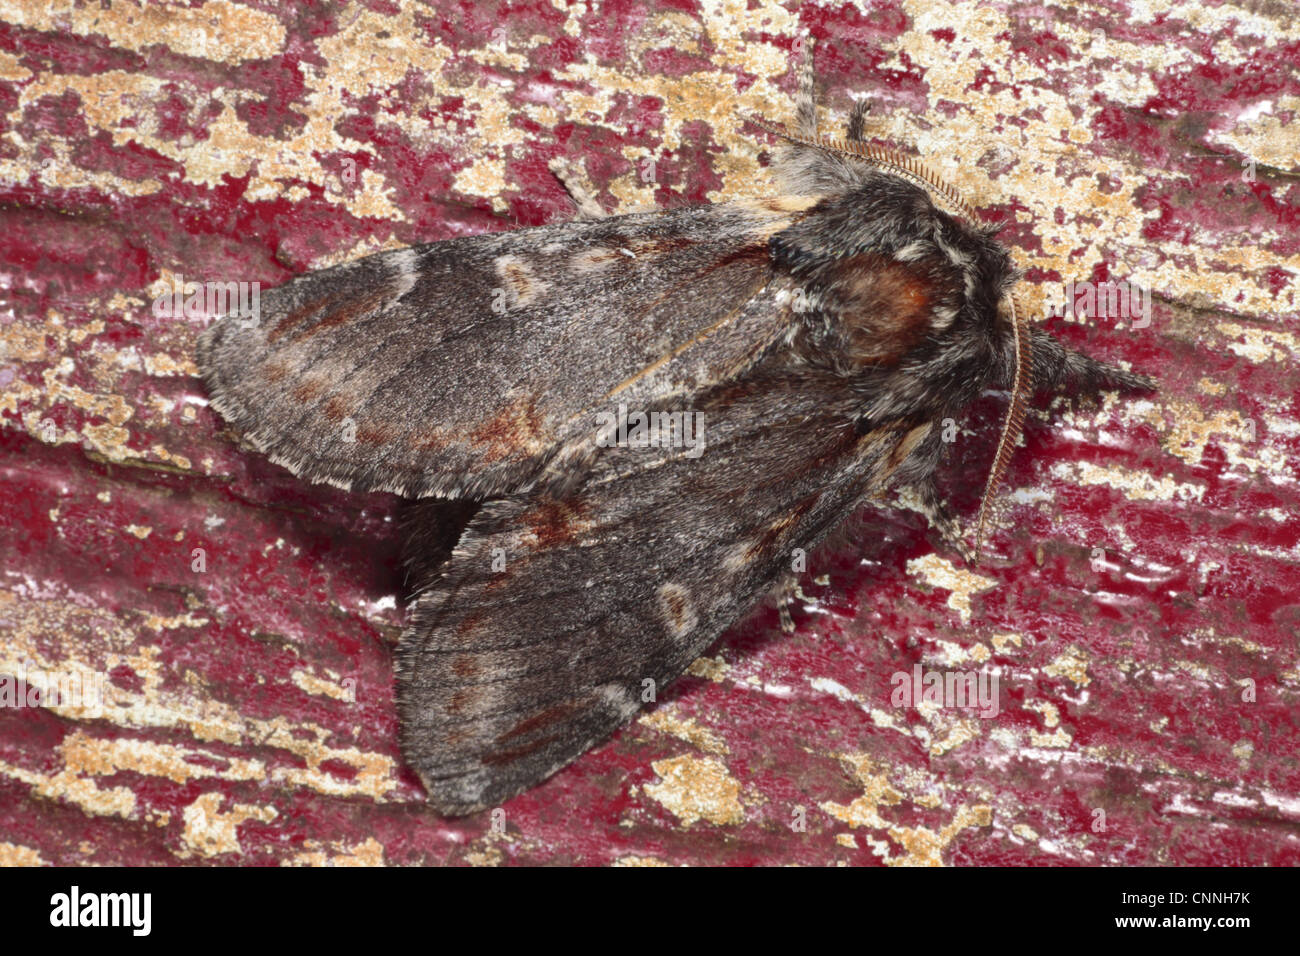 Iron Prominent Moth (Notodonta dromedarius) adult, resting on on old doorframe with flaking paint, Powys, Wales, - Stock Image